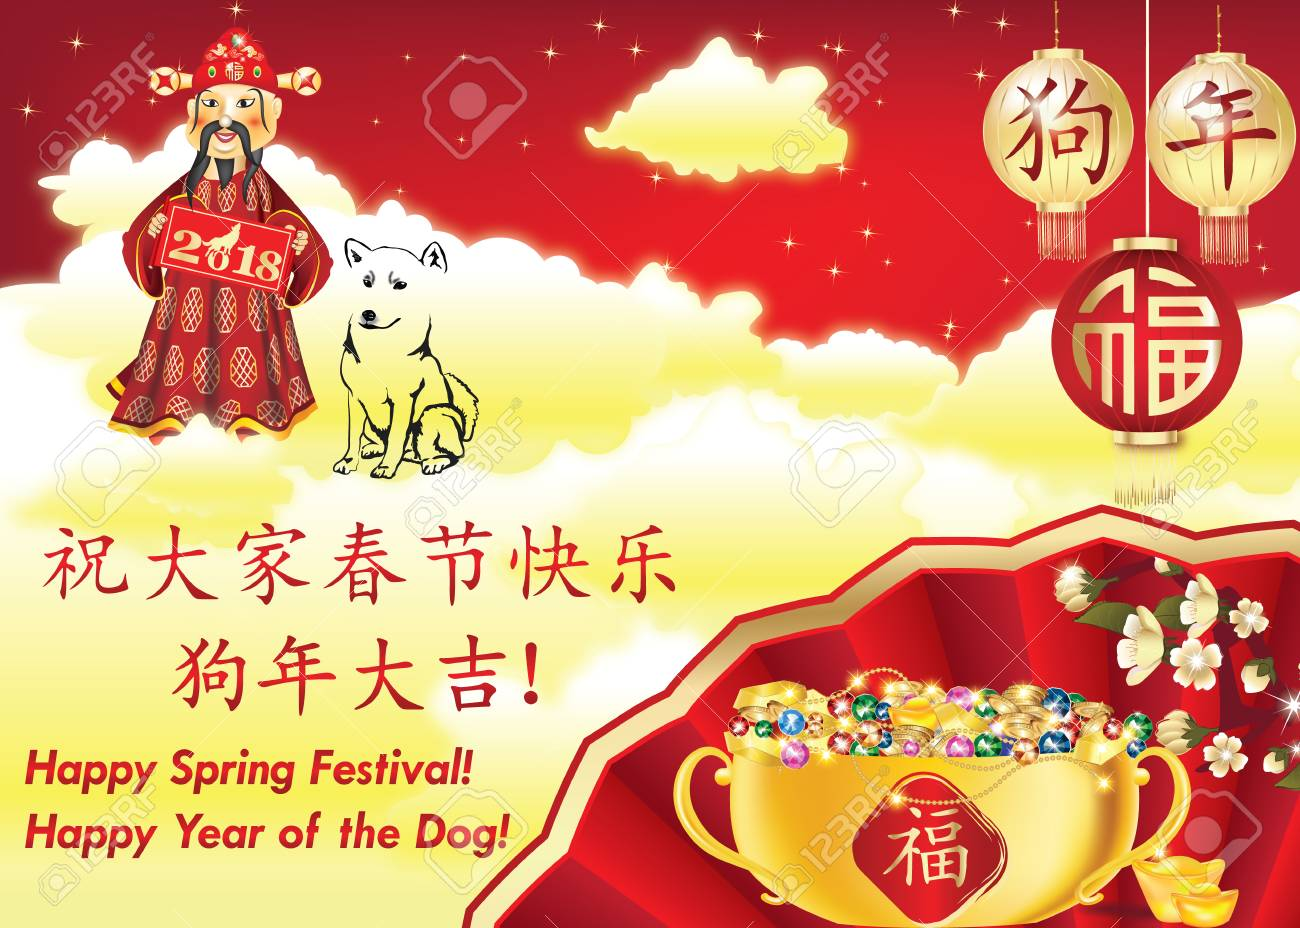 Greeting card for the chinese new year of the dog 2018 text greeting card for the chinese new year of the dog 2018 text happy spring m4hsunfo